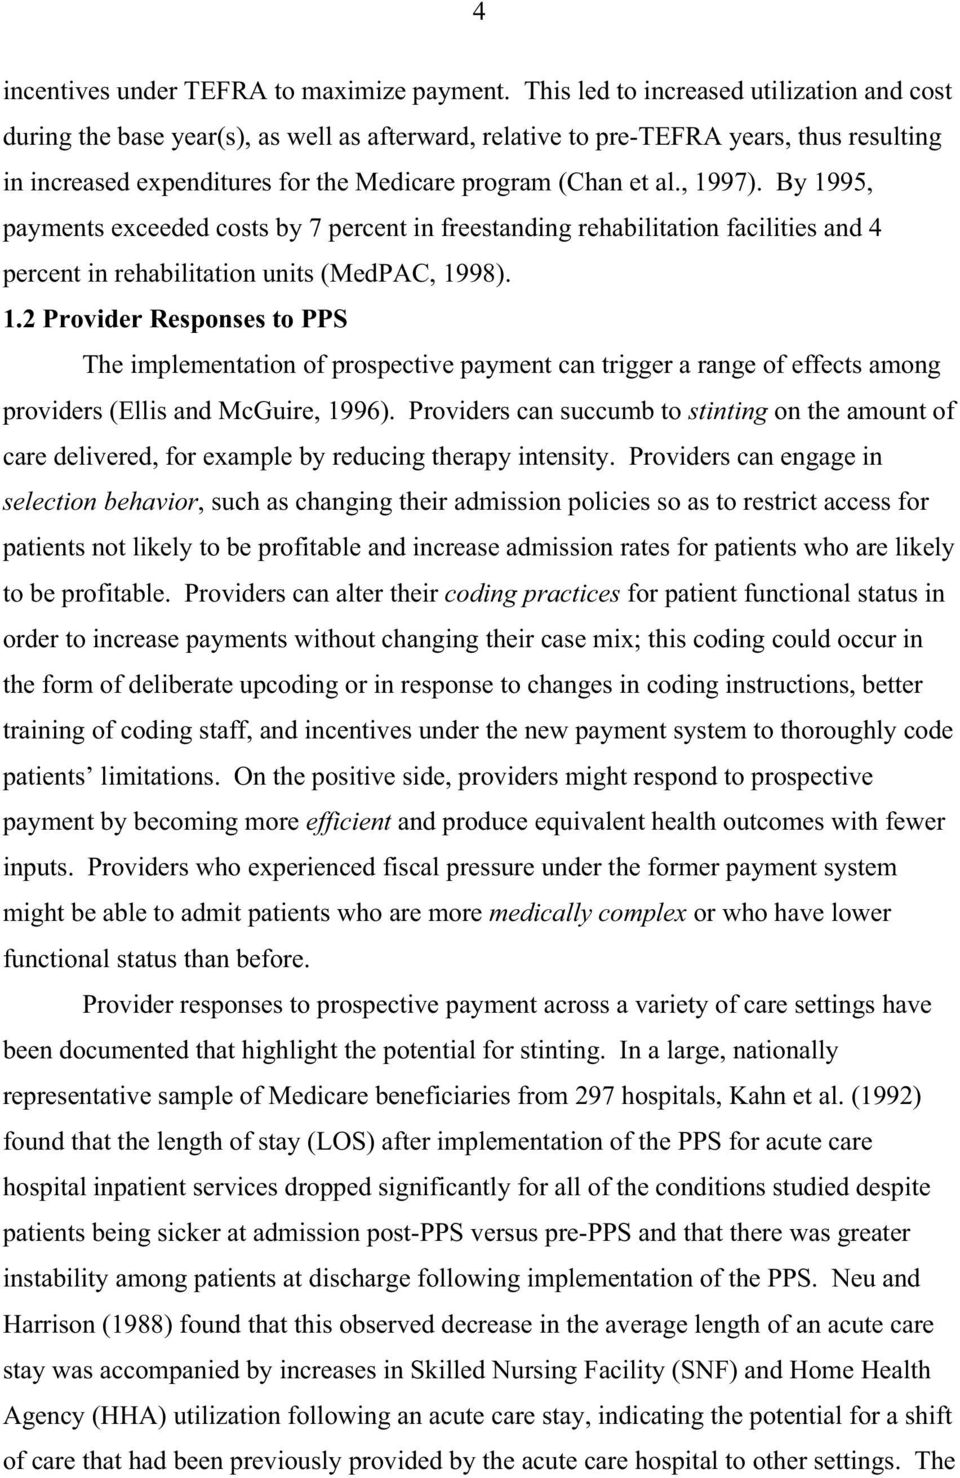 , 1997). By 1995, payments exceeded costs by 7 percent in freestanding rehabilitation facilities and 4 percent in rehabilitation units (MedPAC, 1998). 1.2 Provider Responses to PPS The implementation of prospective payment can trigger a range of effects among providers (Ellis and McGuire, 1996).